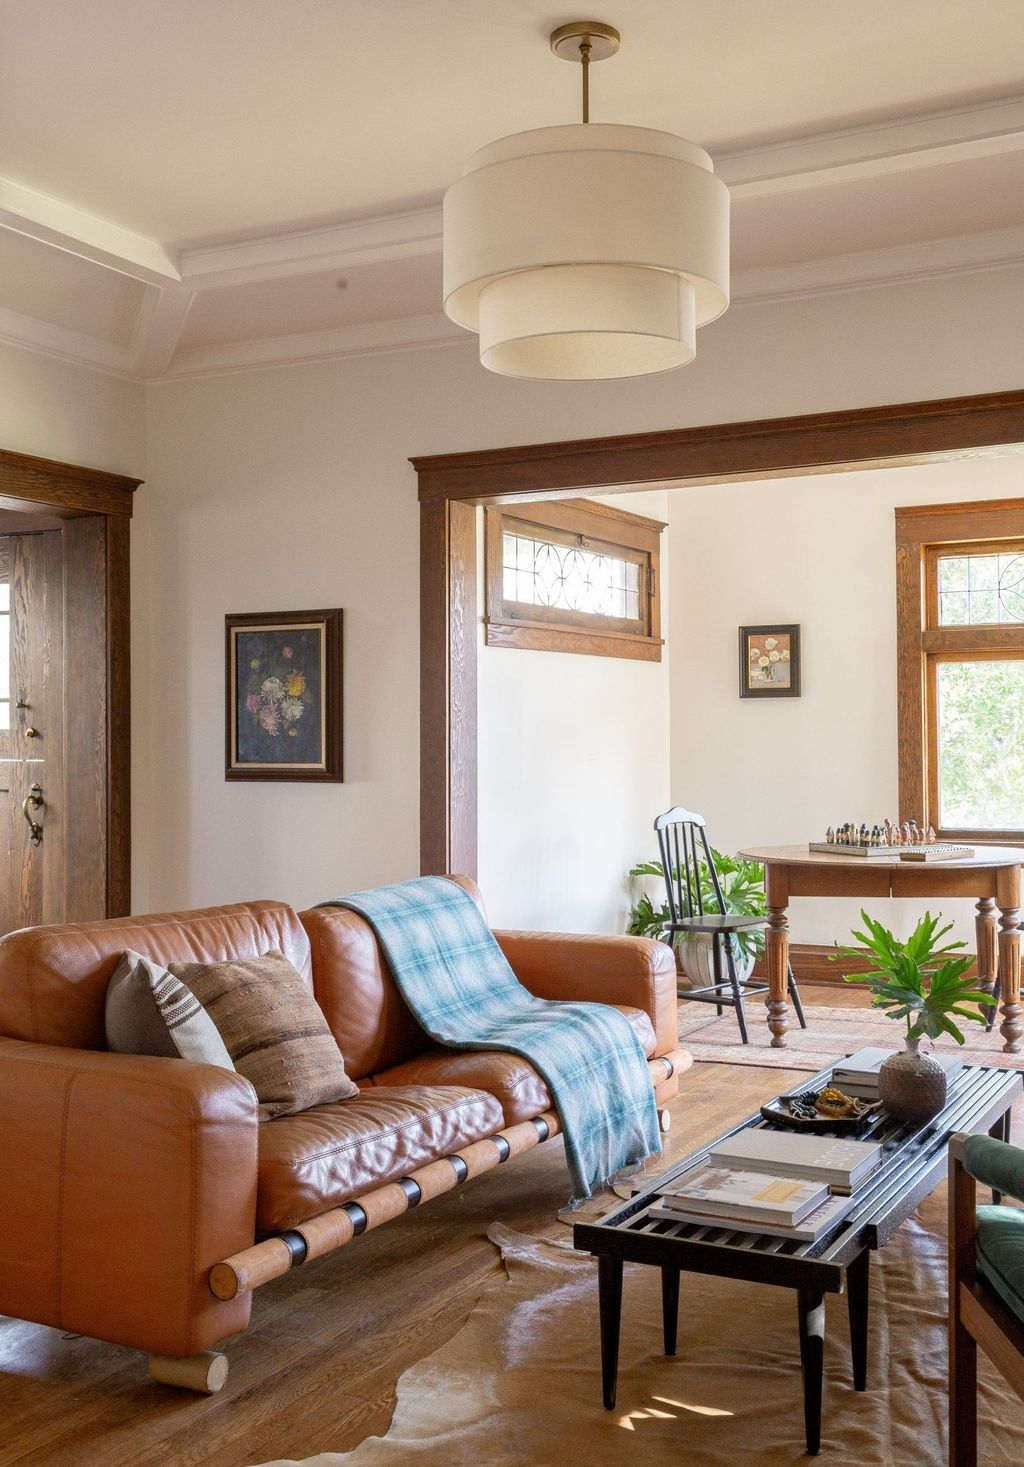 Fascinating Classic Home Decor Ideas That You Definitely Like 30 Magzhouse